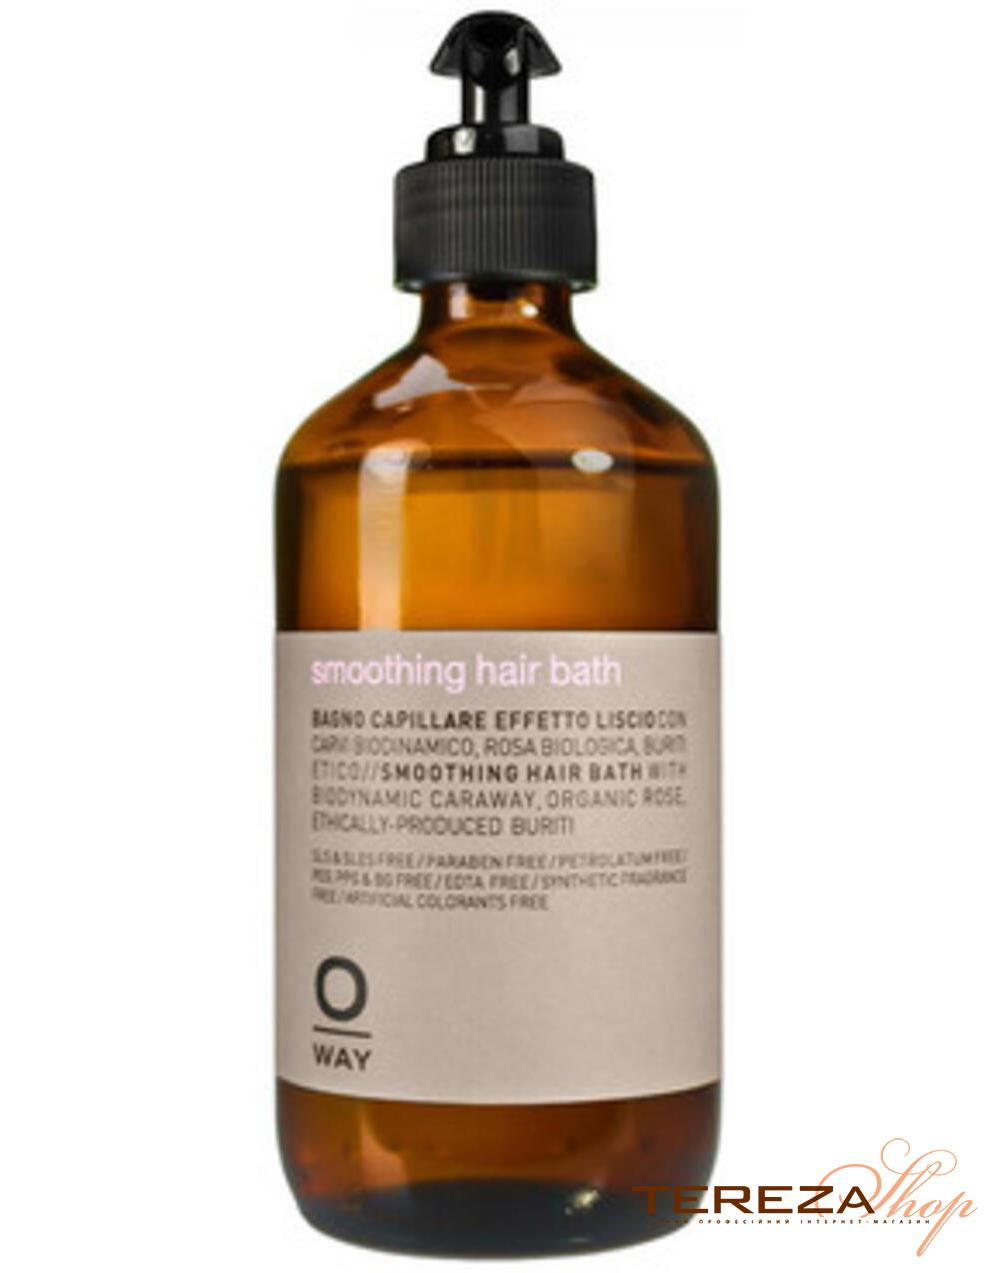 SMOOTHING HAIR BATH 240ml OWAY | Tereza Shop